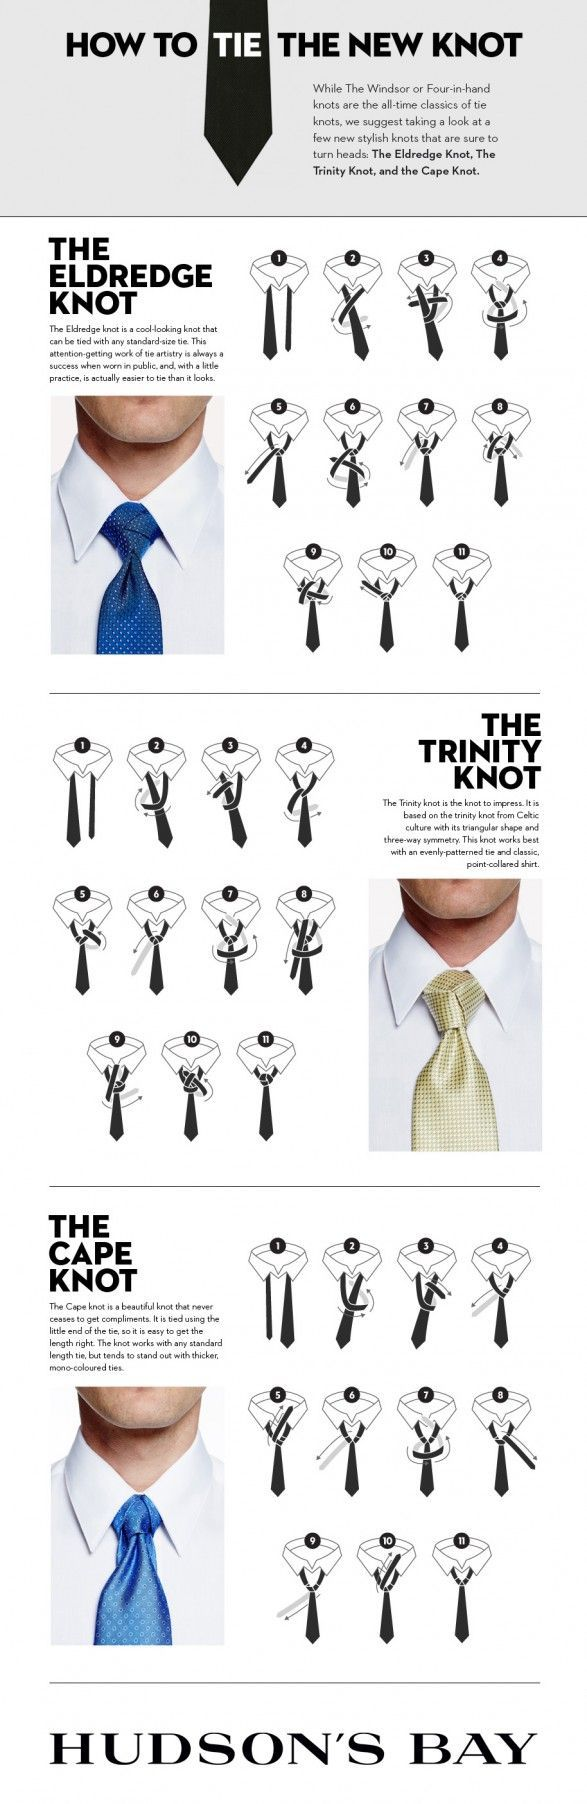 Fun new ways to tie your tie. #mensfashion #fashion #style #mensaccessorieseveryday